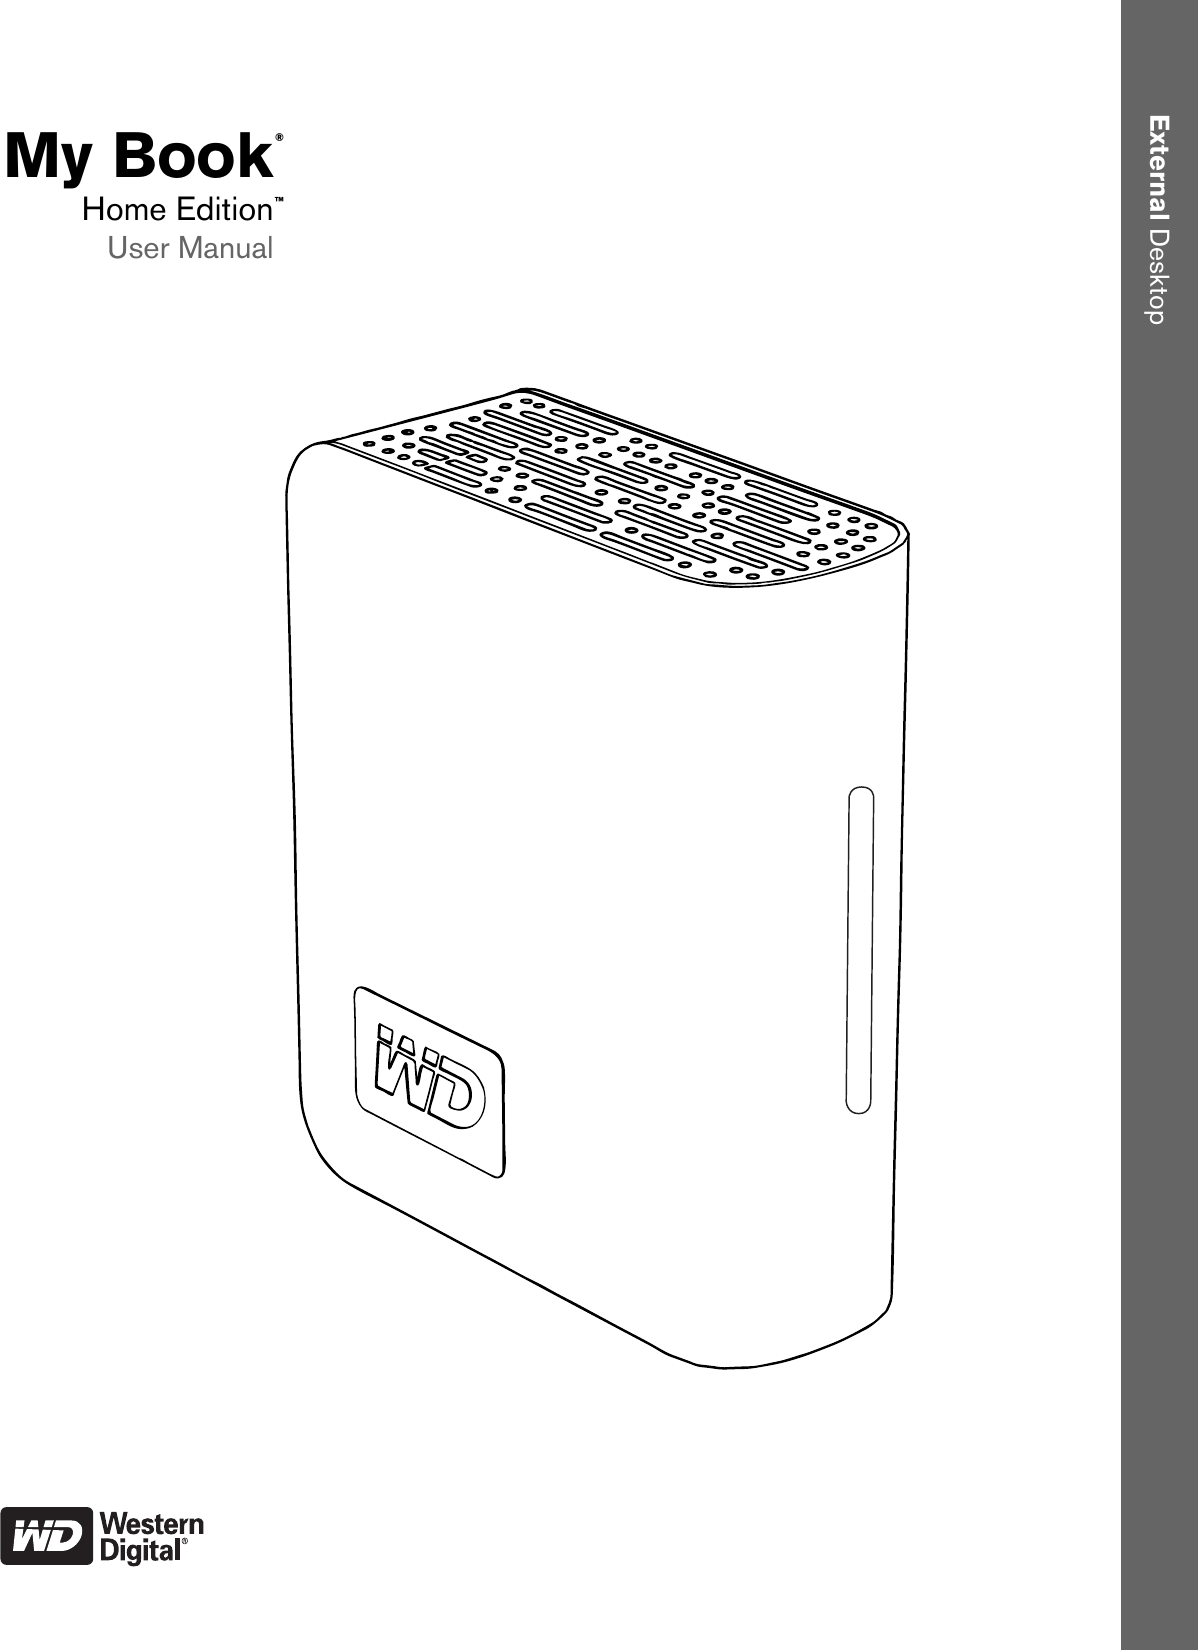 Western Digital Wd10000H1U 00 Users Manual 820173 My Book